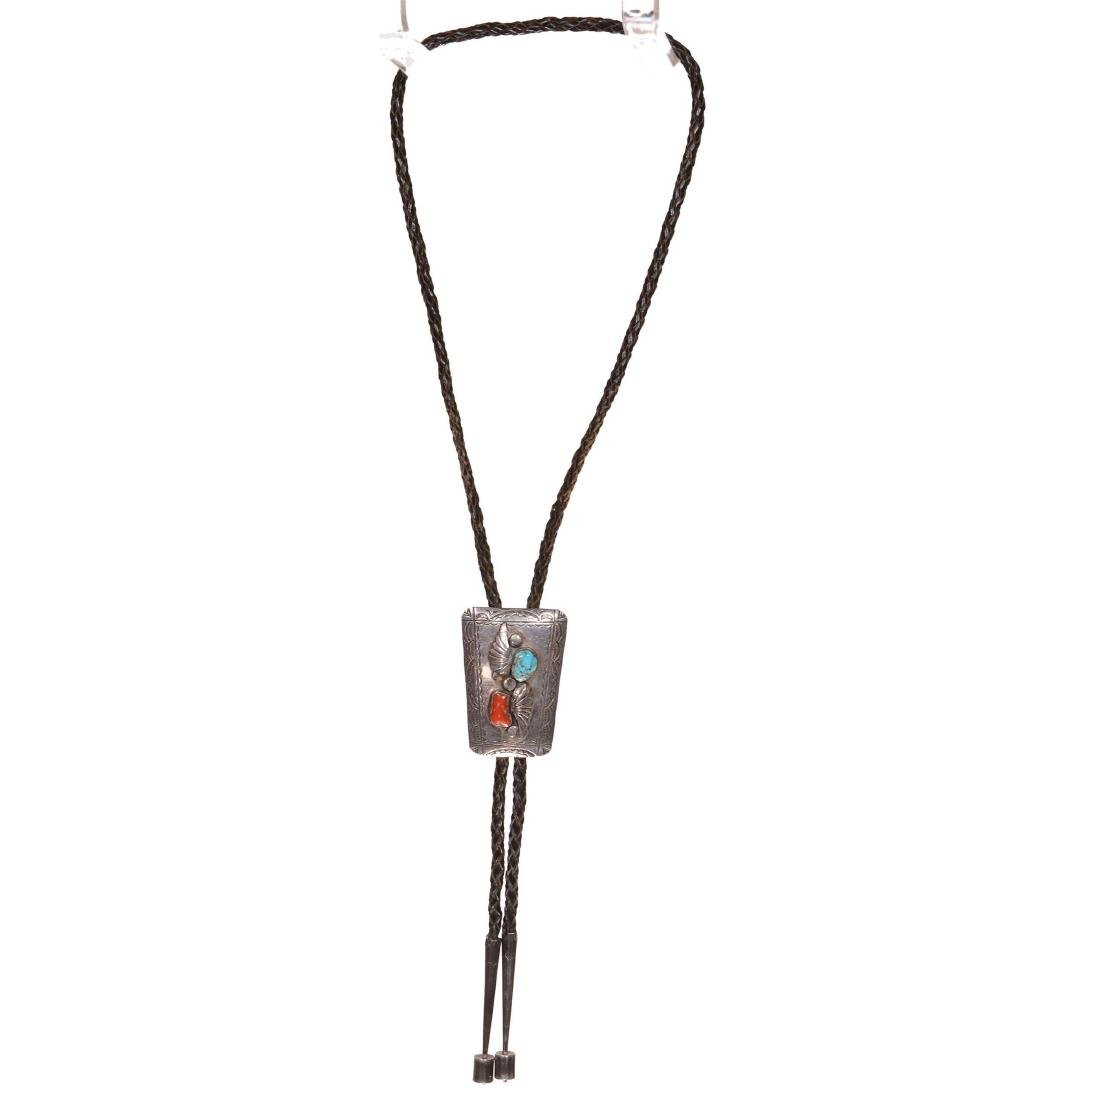 Authentic American Indian Bolo Tie